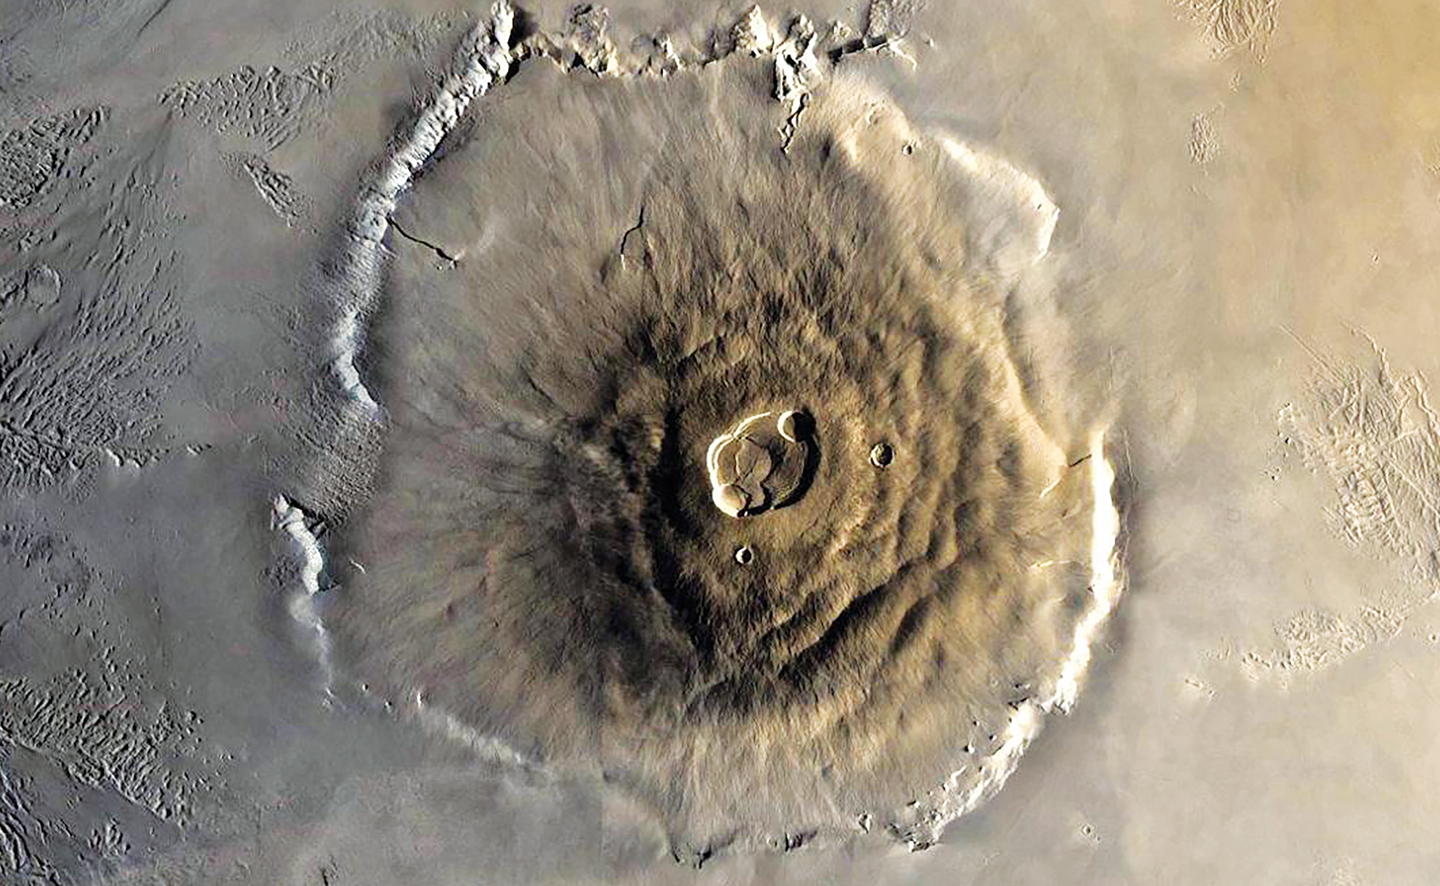 Mars volcano from above